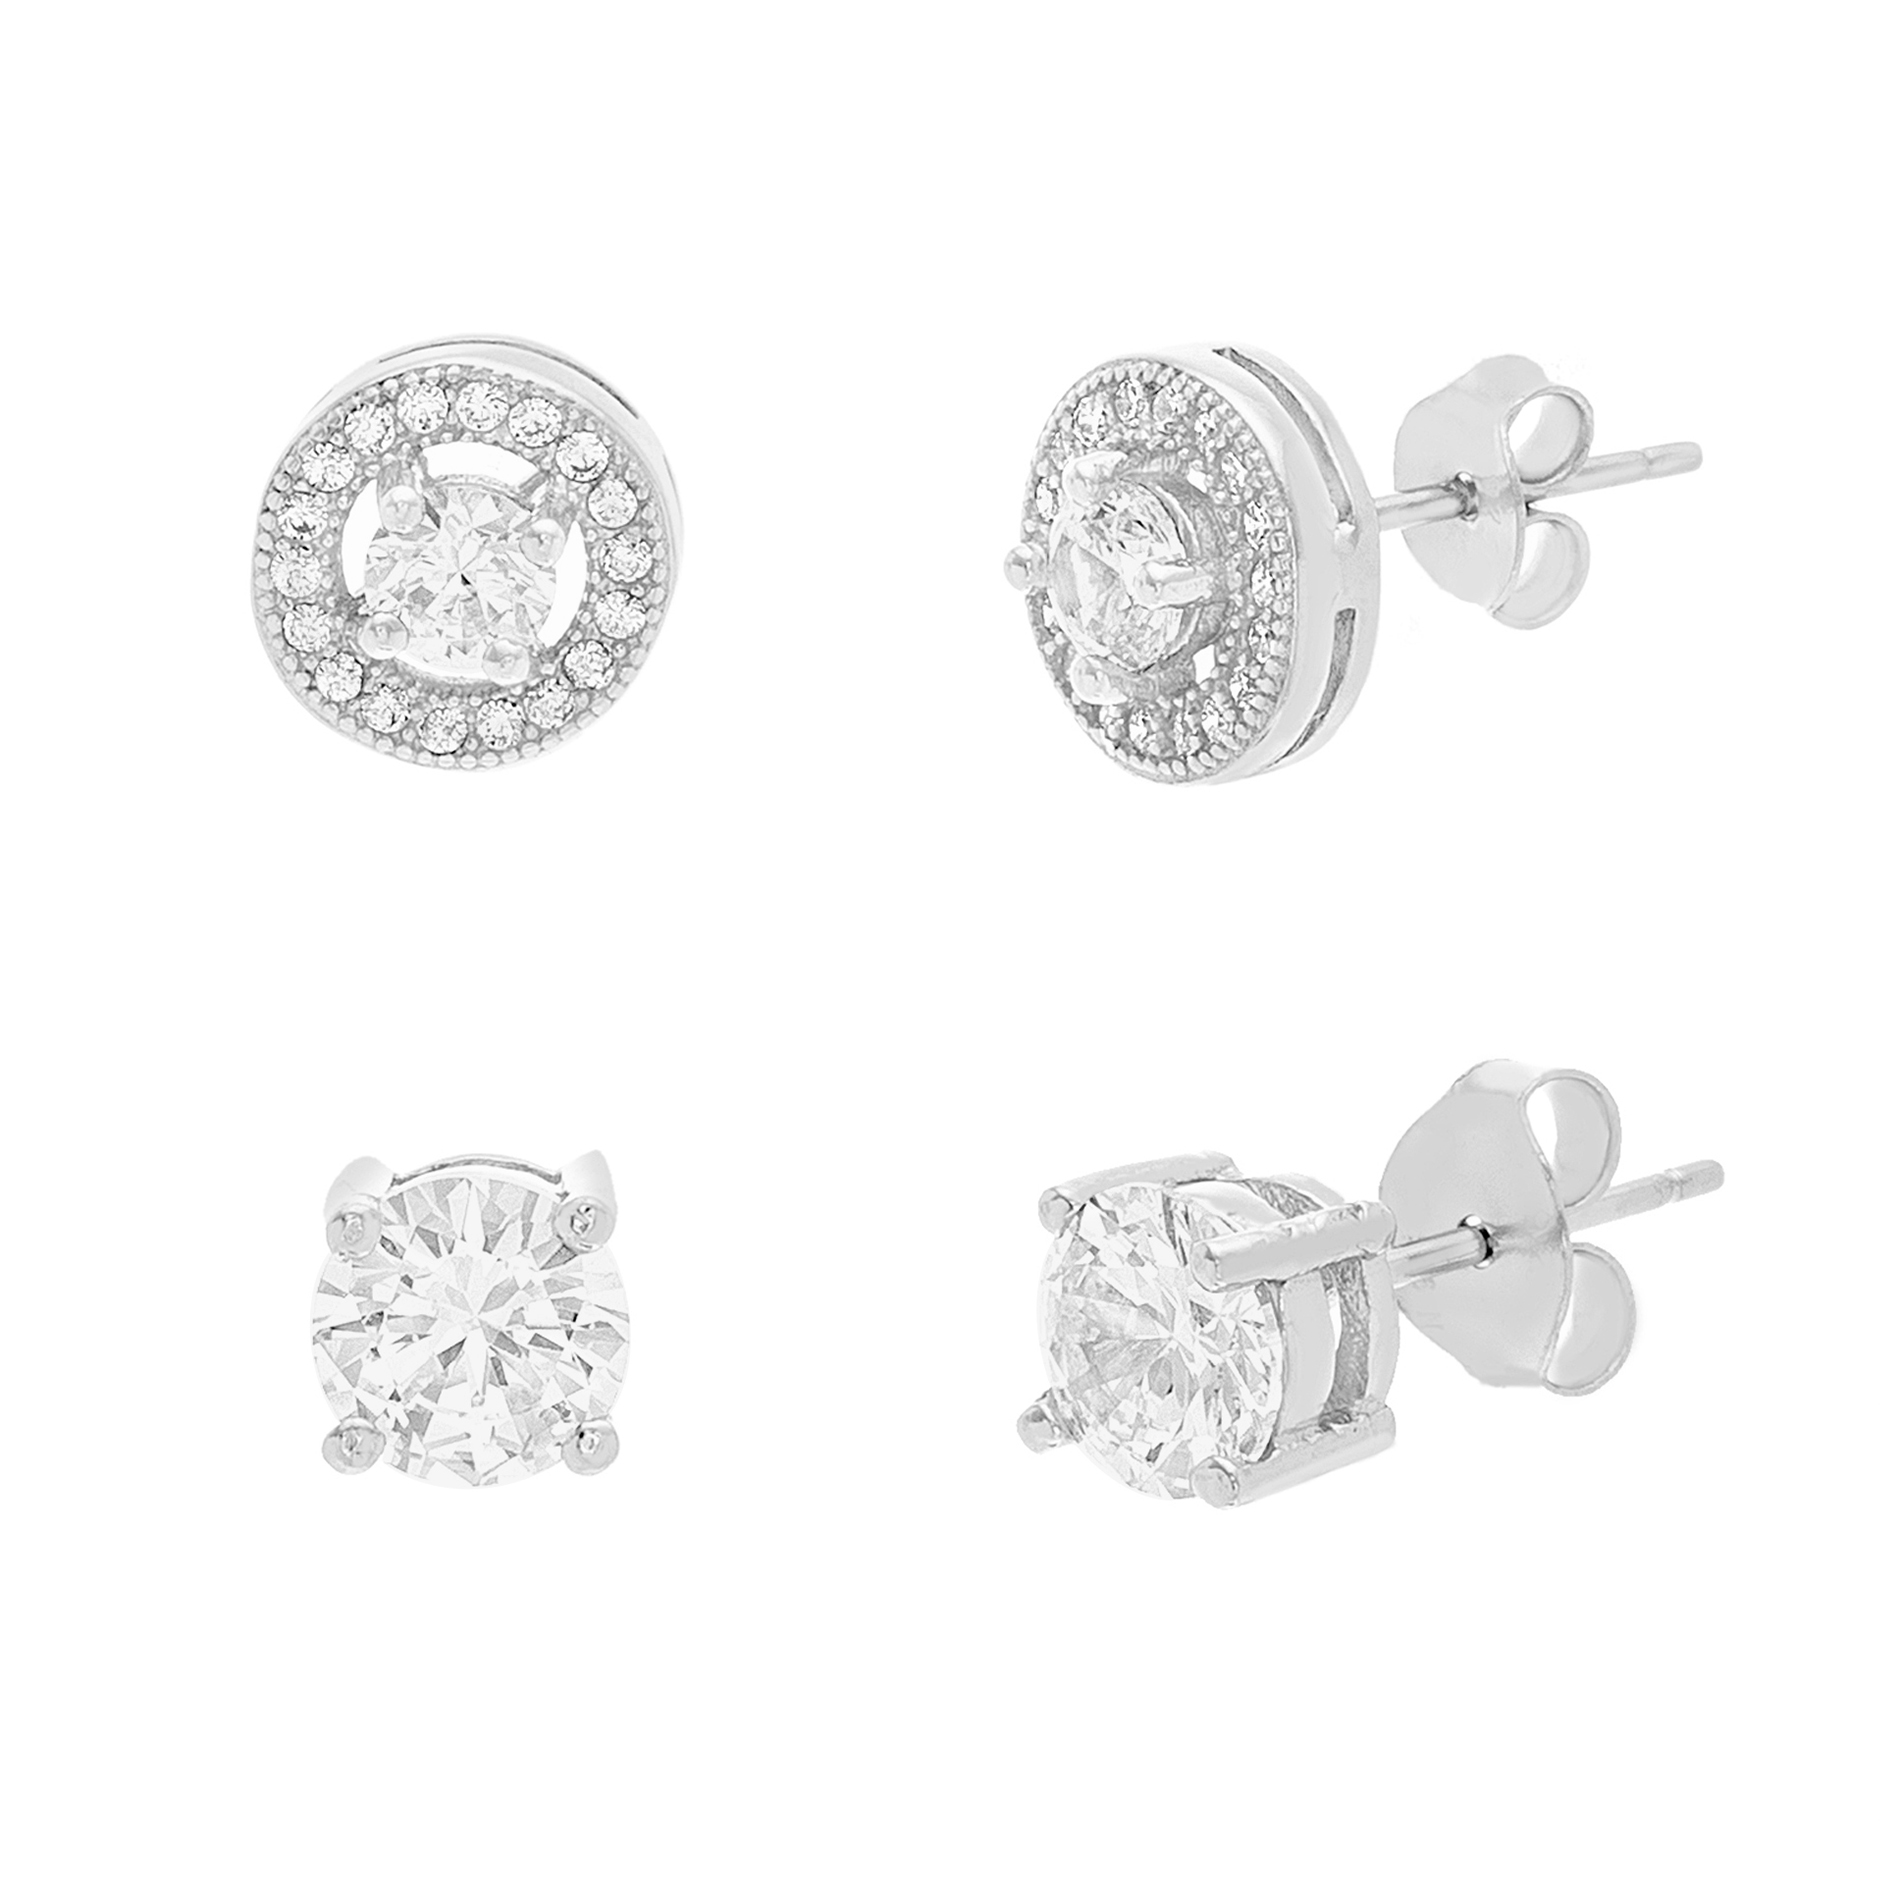 18K White Gold Sterling Silver Cubic Zirconia Duo 4 Prong Halo and Circle Earring Set